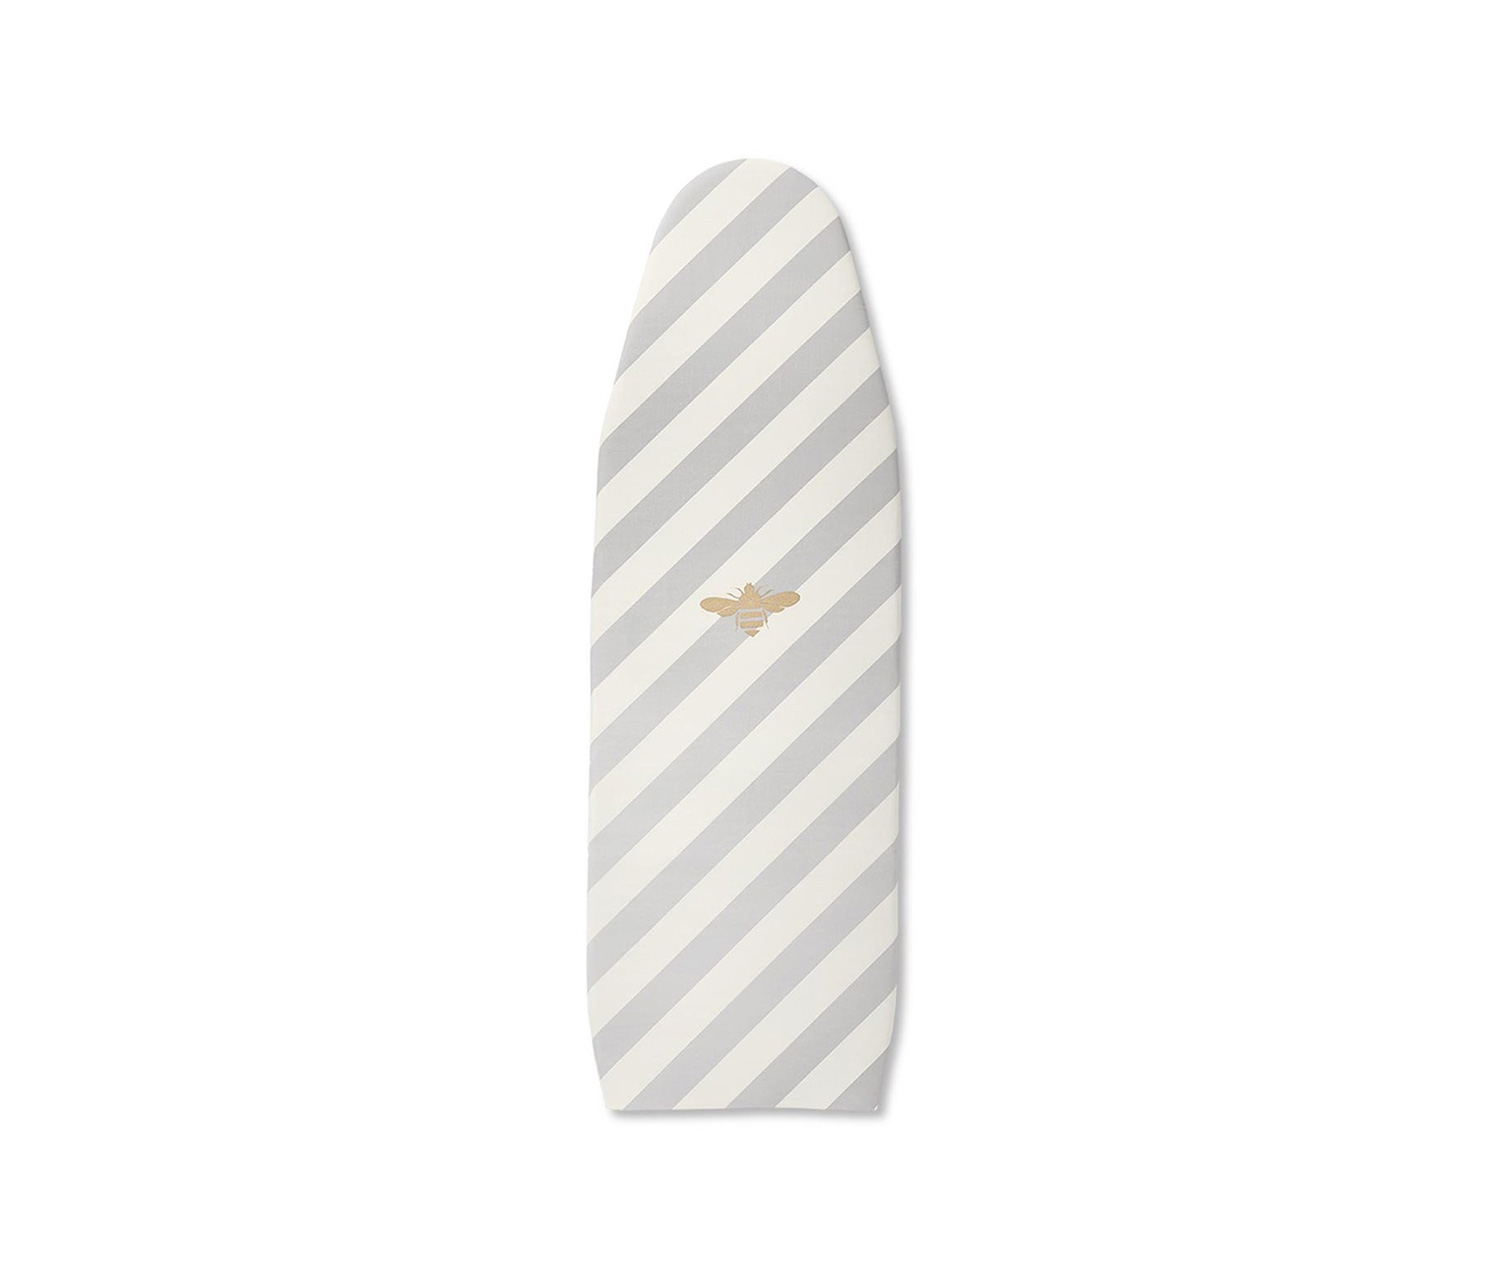 Ironing Board Cover, White/Grey